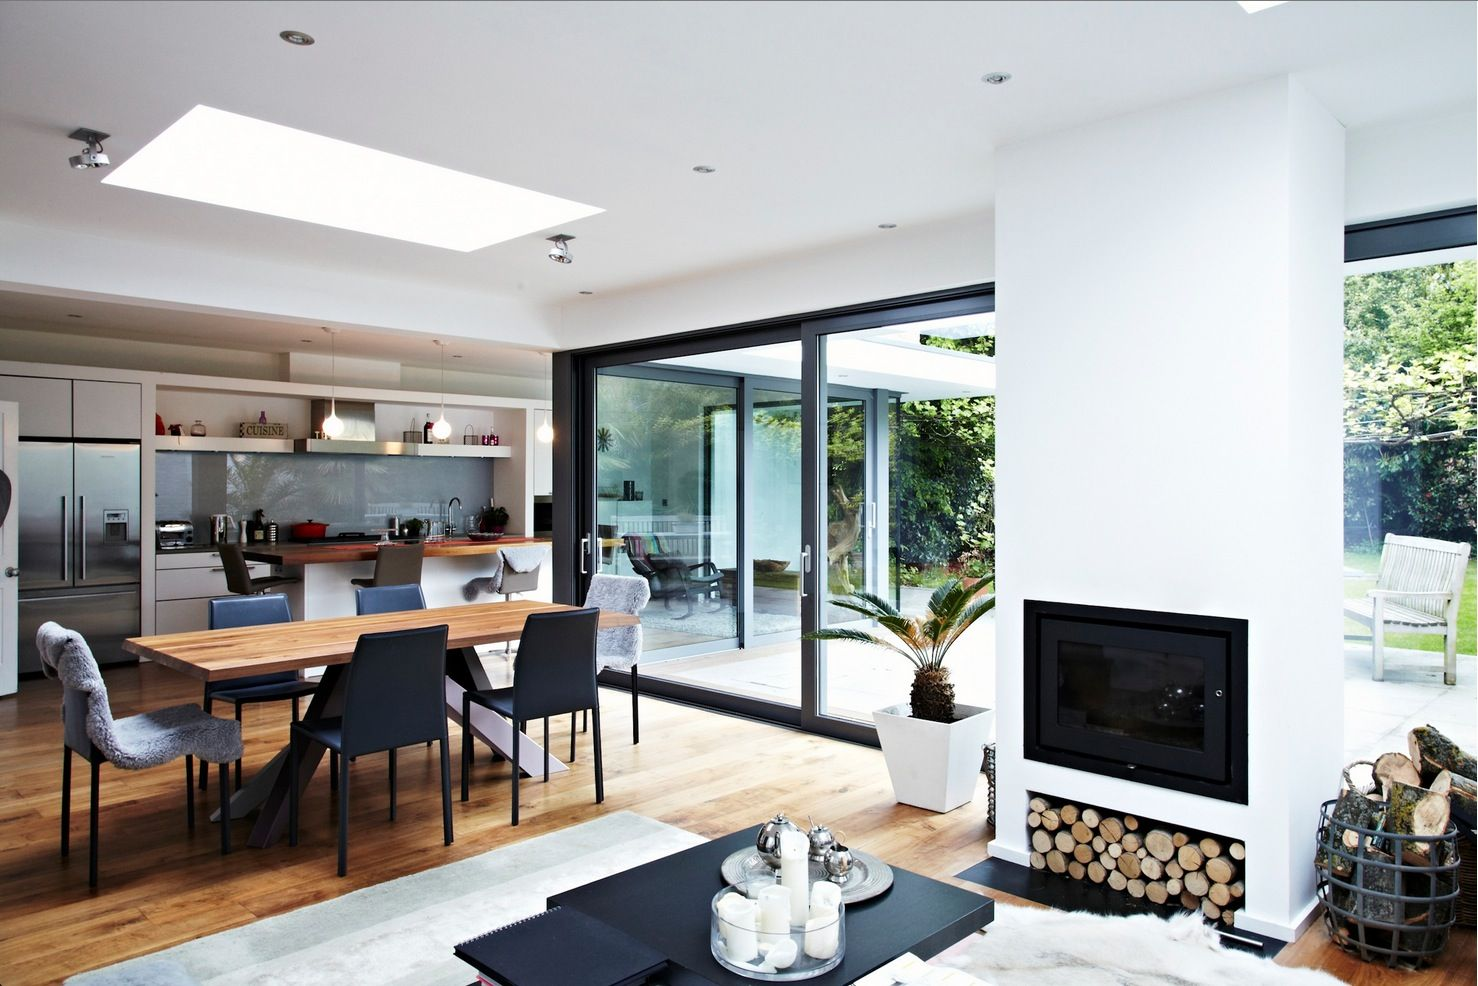 Living Room Extensions Interior Simple This Home Located In The Kingston Region Of London Is The Perfect . Inspiration